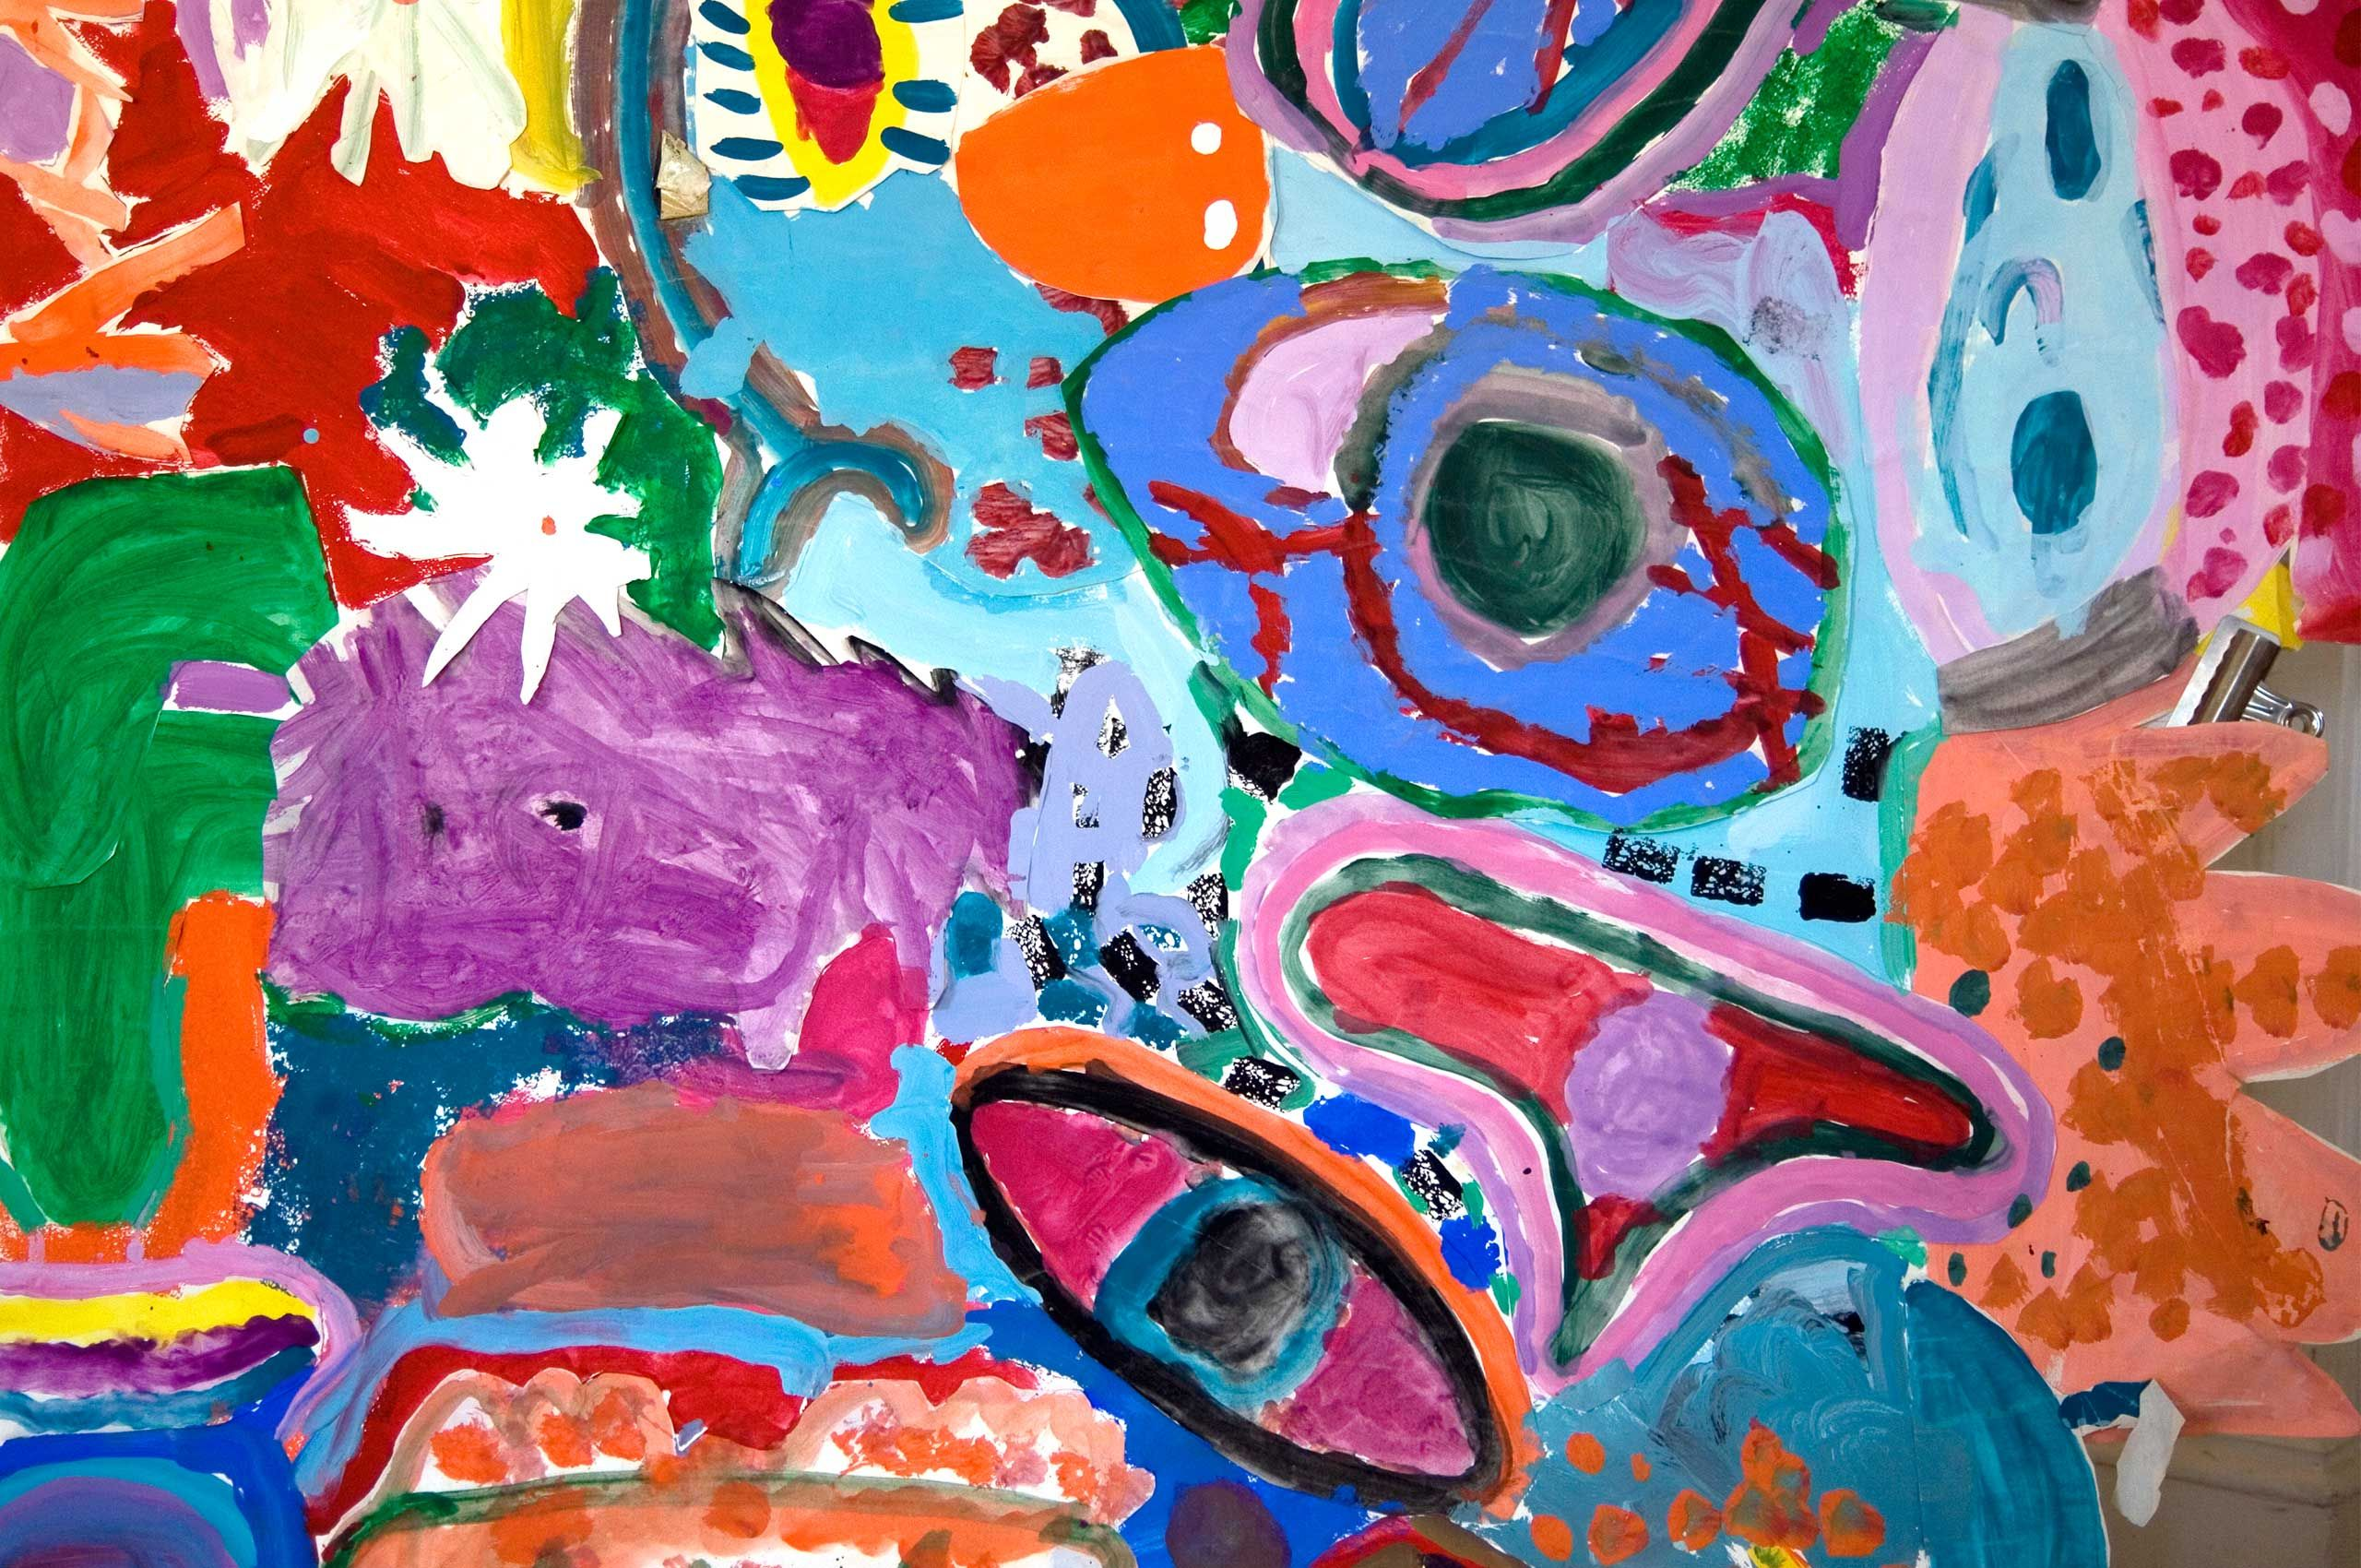 Real studio art for busy kids and busy families. Projects, videos and read-alongs online free to users. Adaptable for groups.